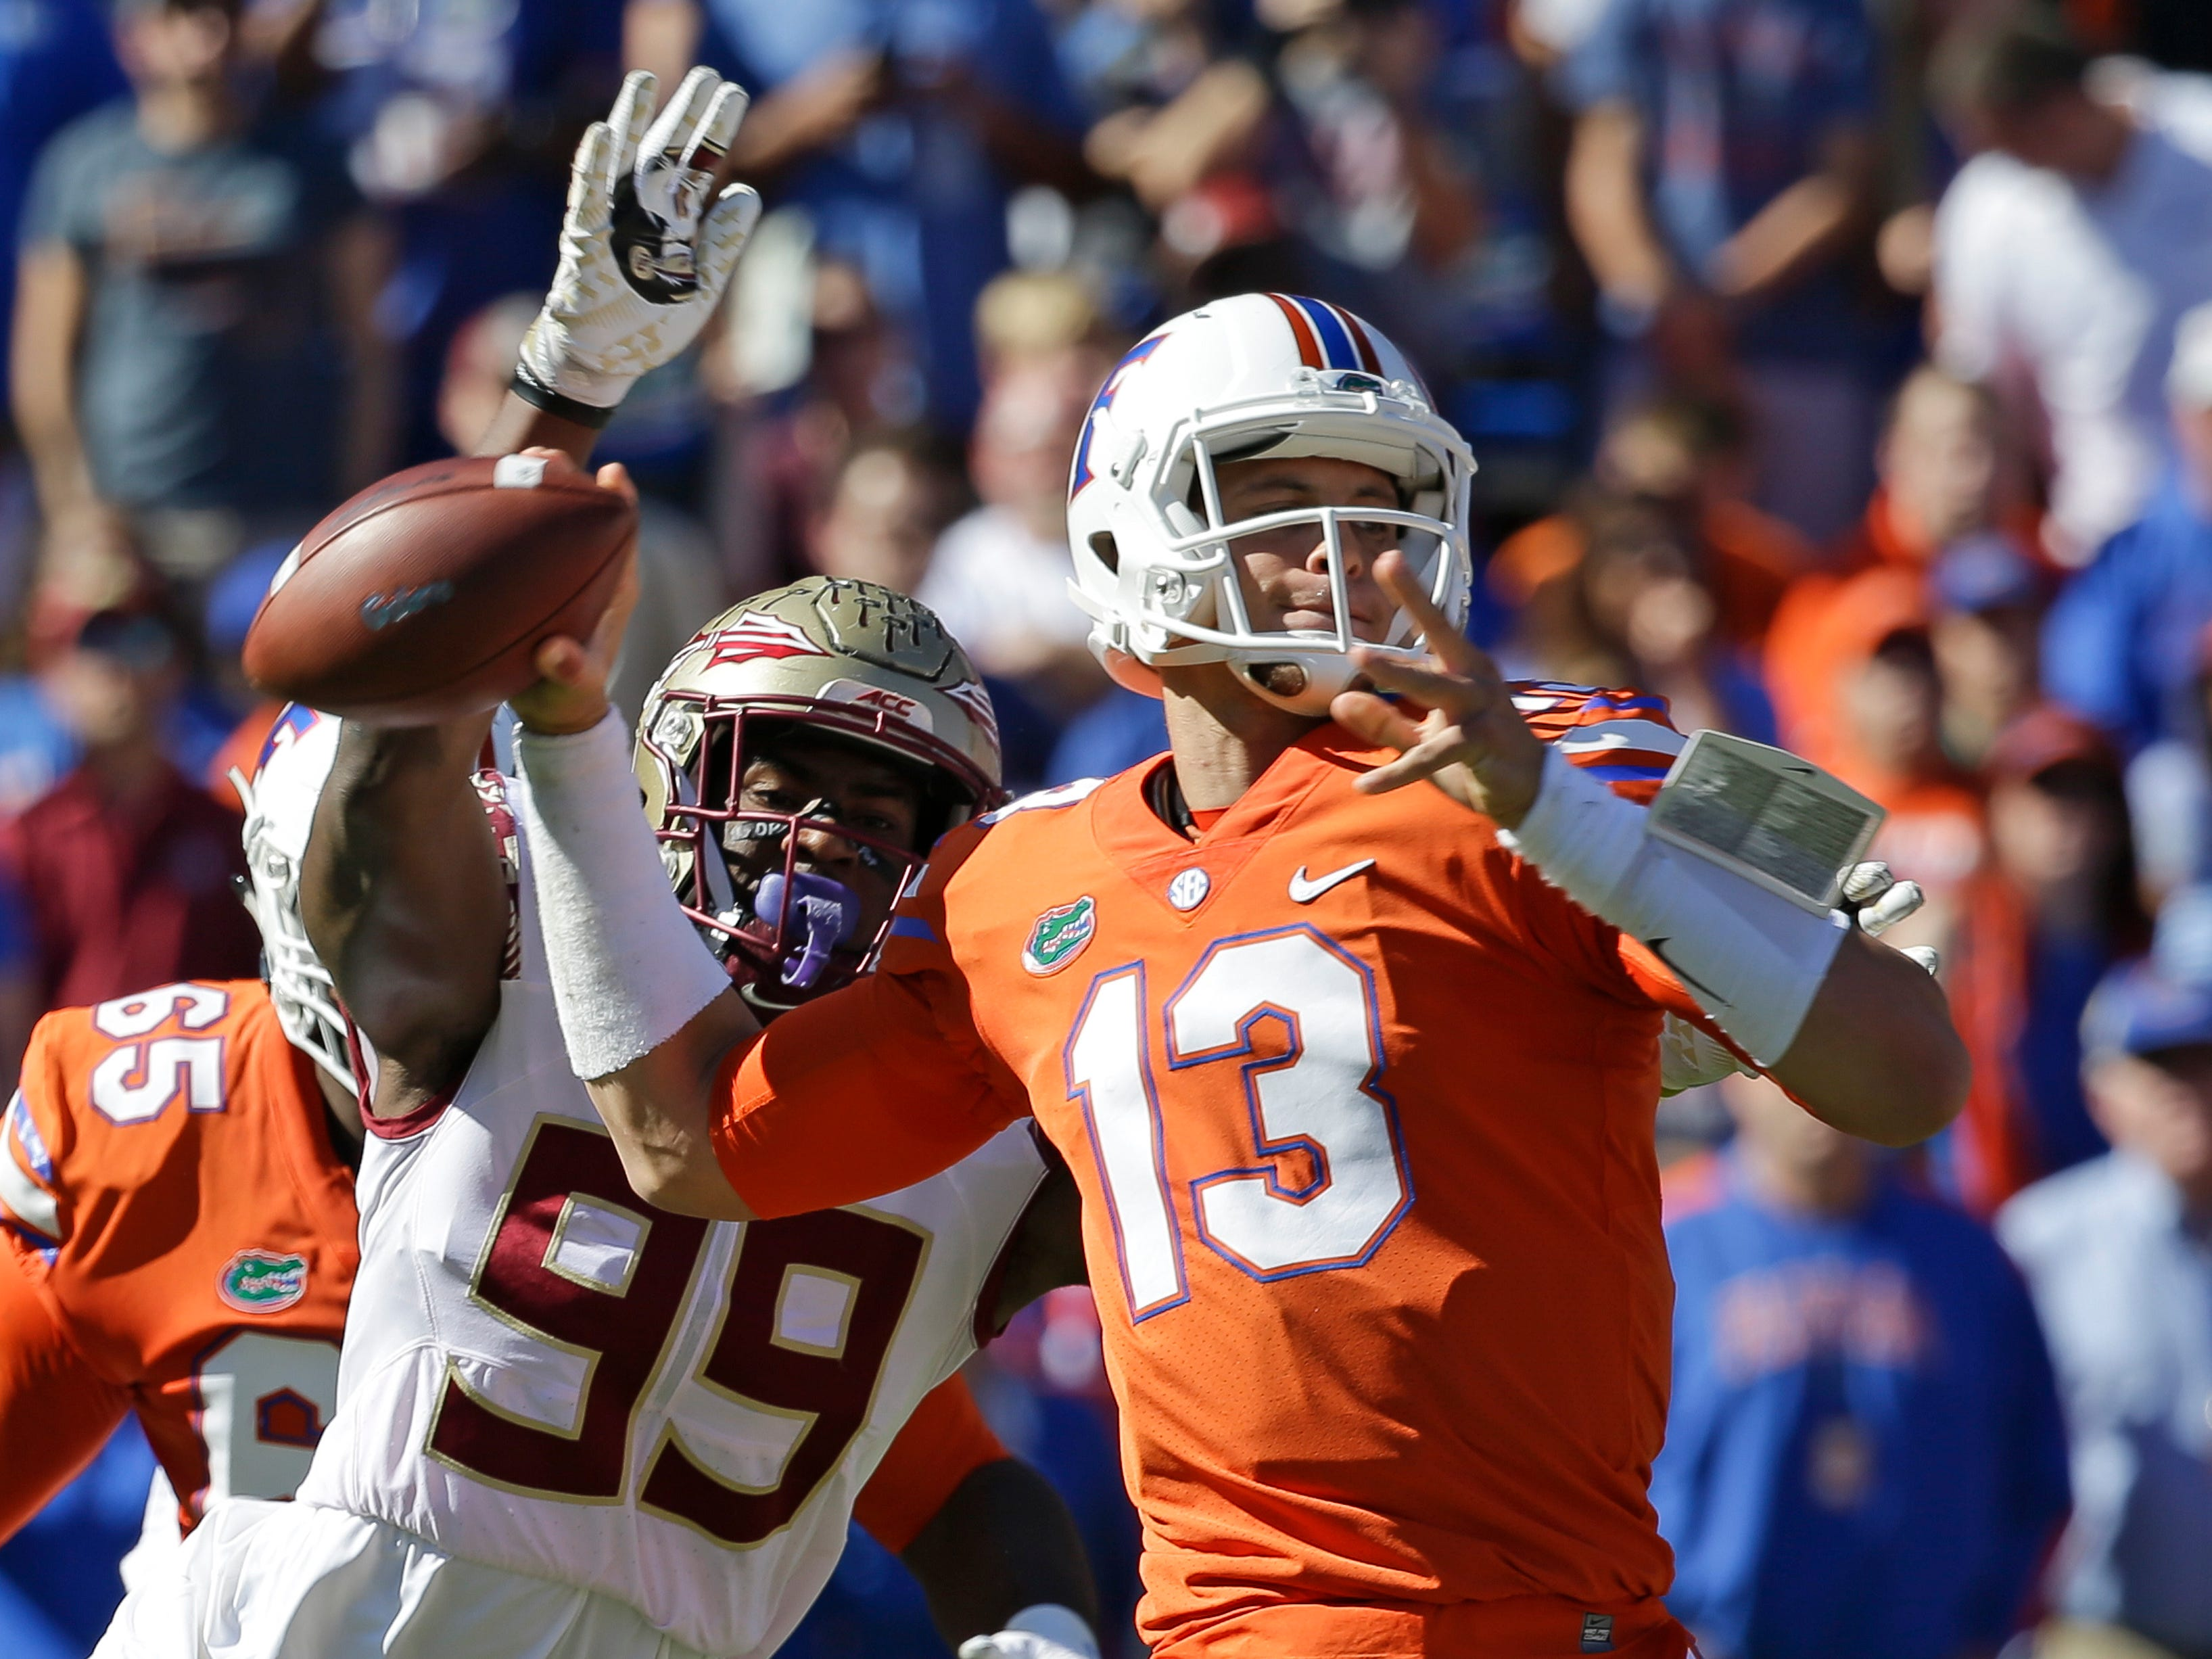 Florida State defensive end Brian Burns (99) strips the ball from the hand of Florida quarterback Feleipe Franks (13) during the first half of an NCAA college football game, Saturday, Nov. 25, 2017, in Gainesville, Fla. Florida State recovered the fumble and scored a touchdown.